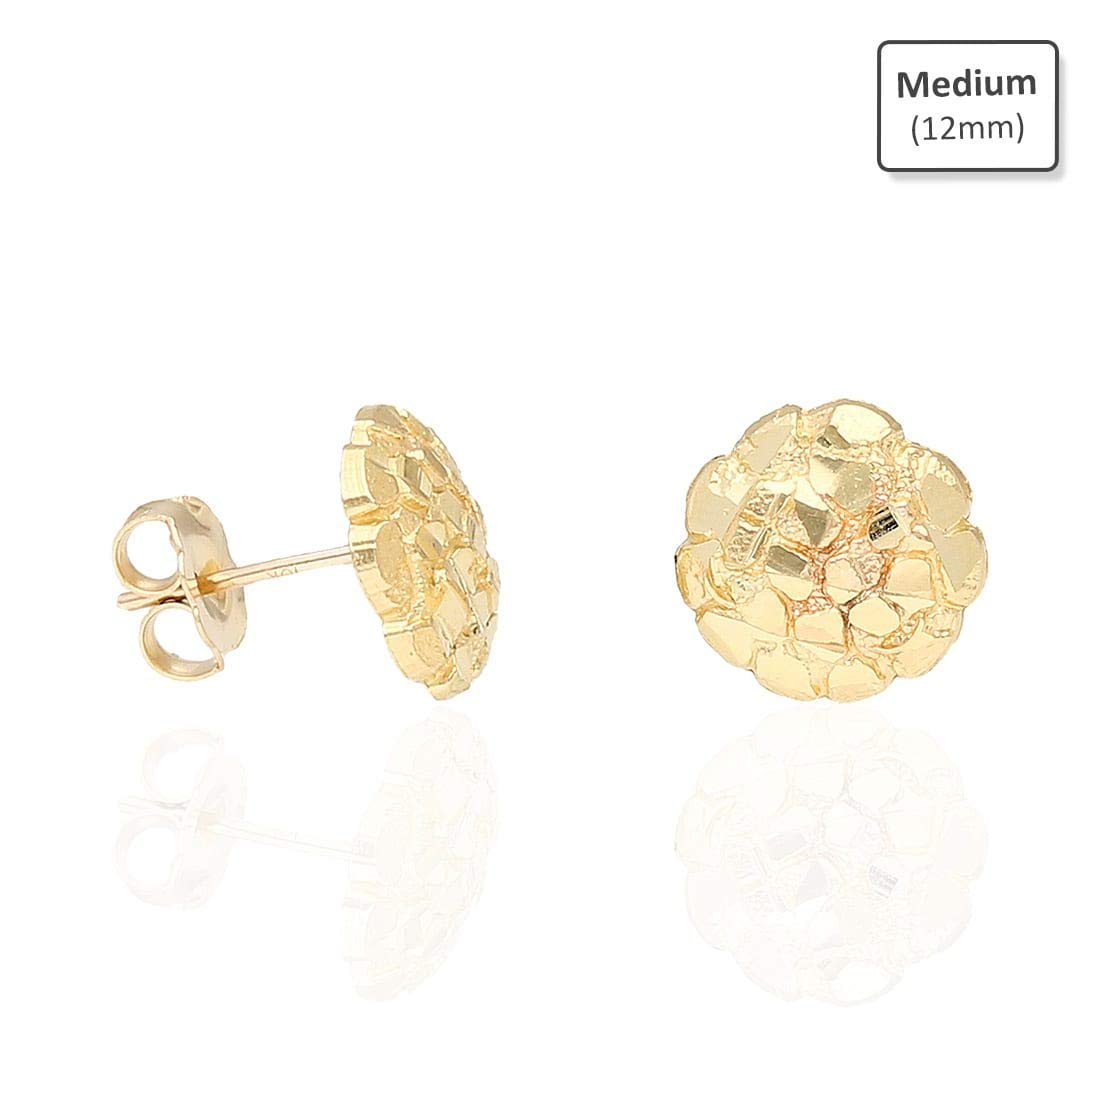 10K Solid Yellow Gold Diamond Cut Nugget Pushback Stud Earrings Extra Large WJD Exclusives 49766-extra-large